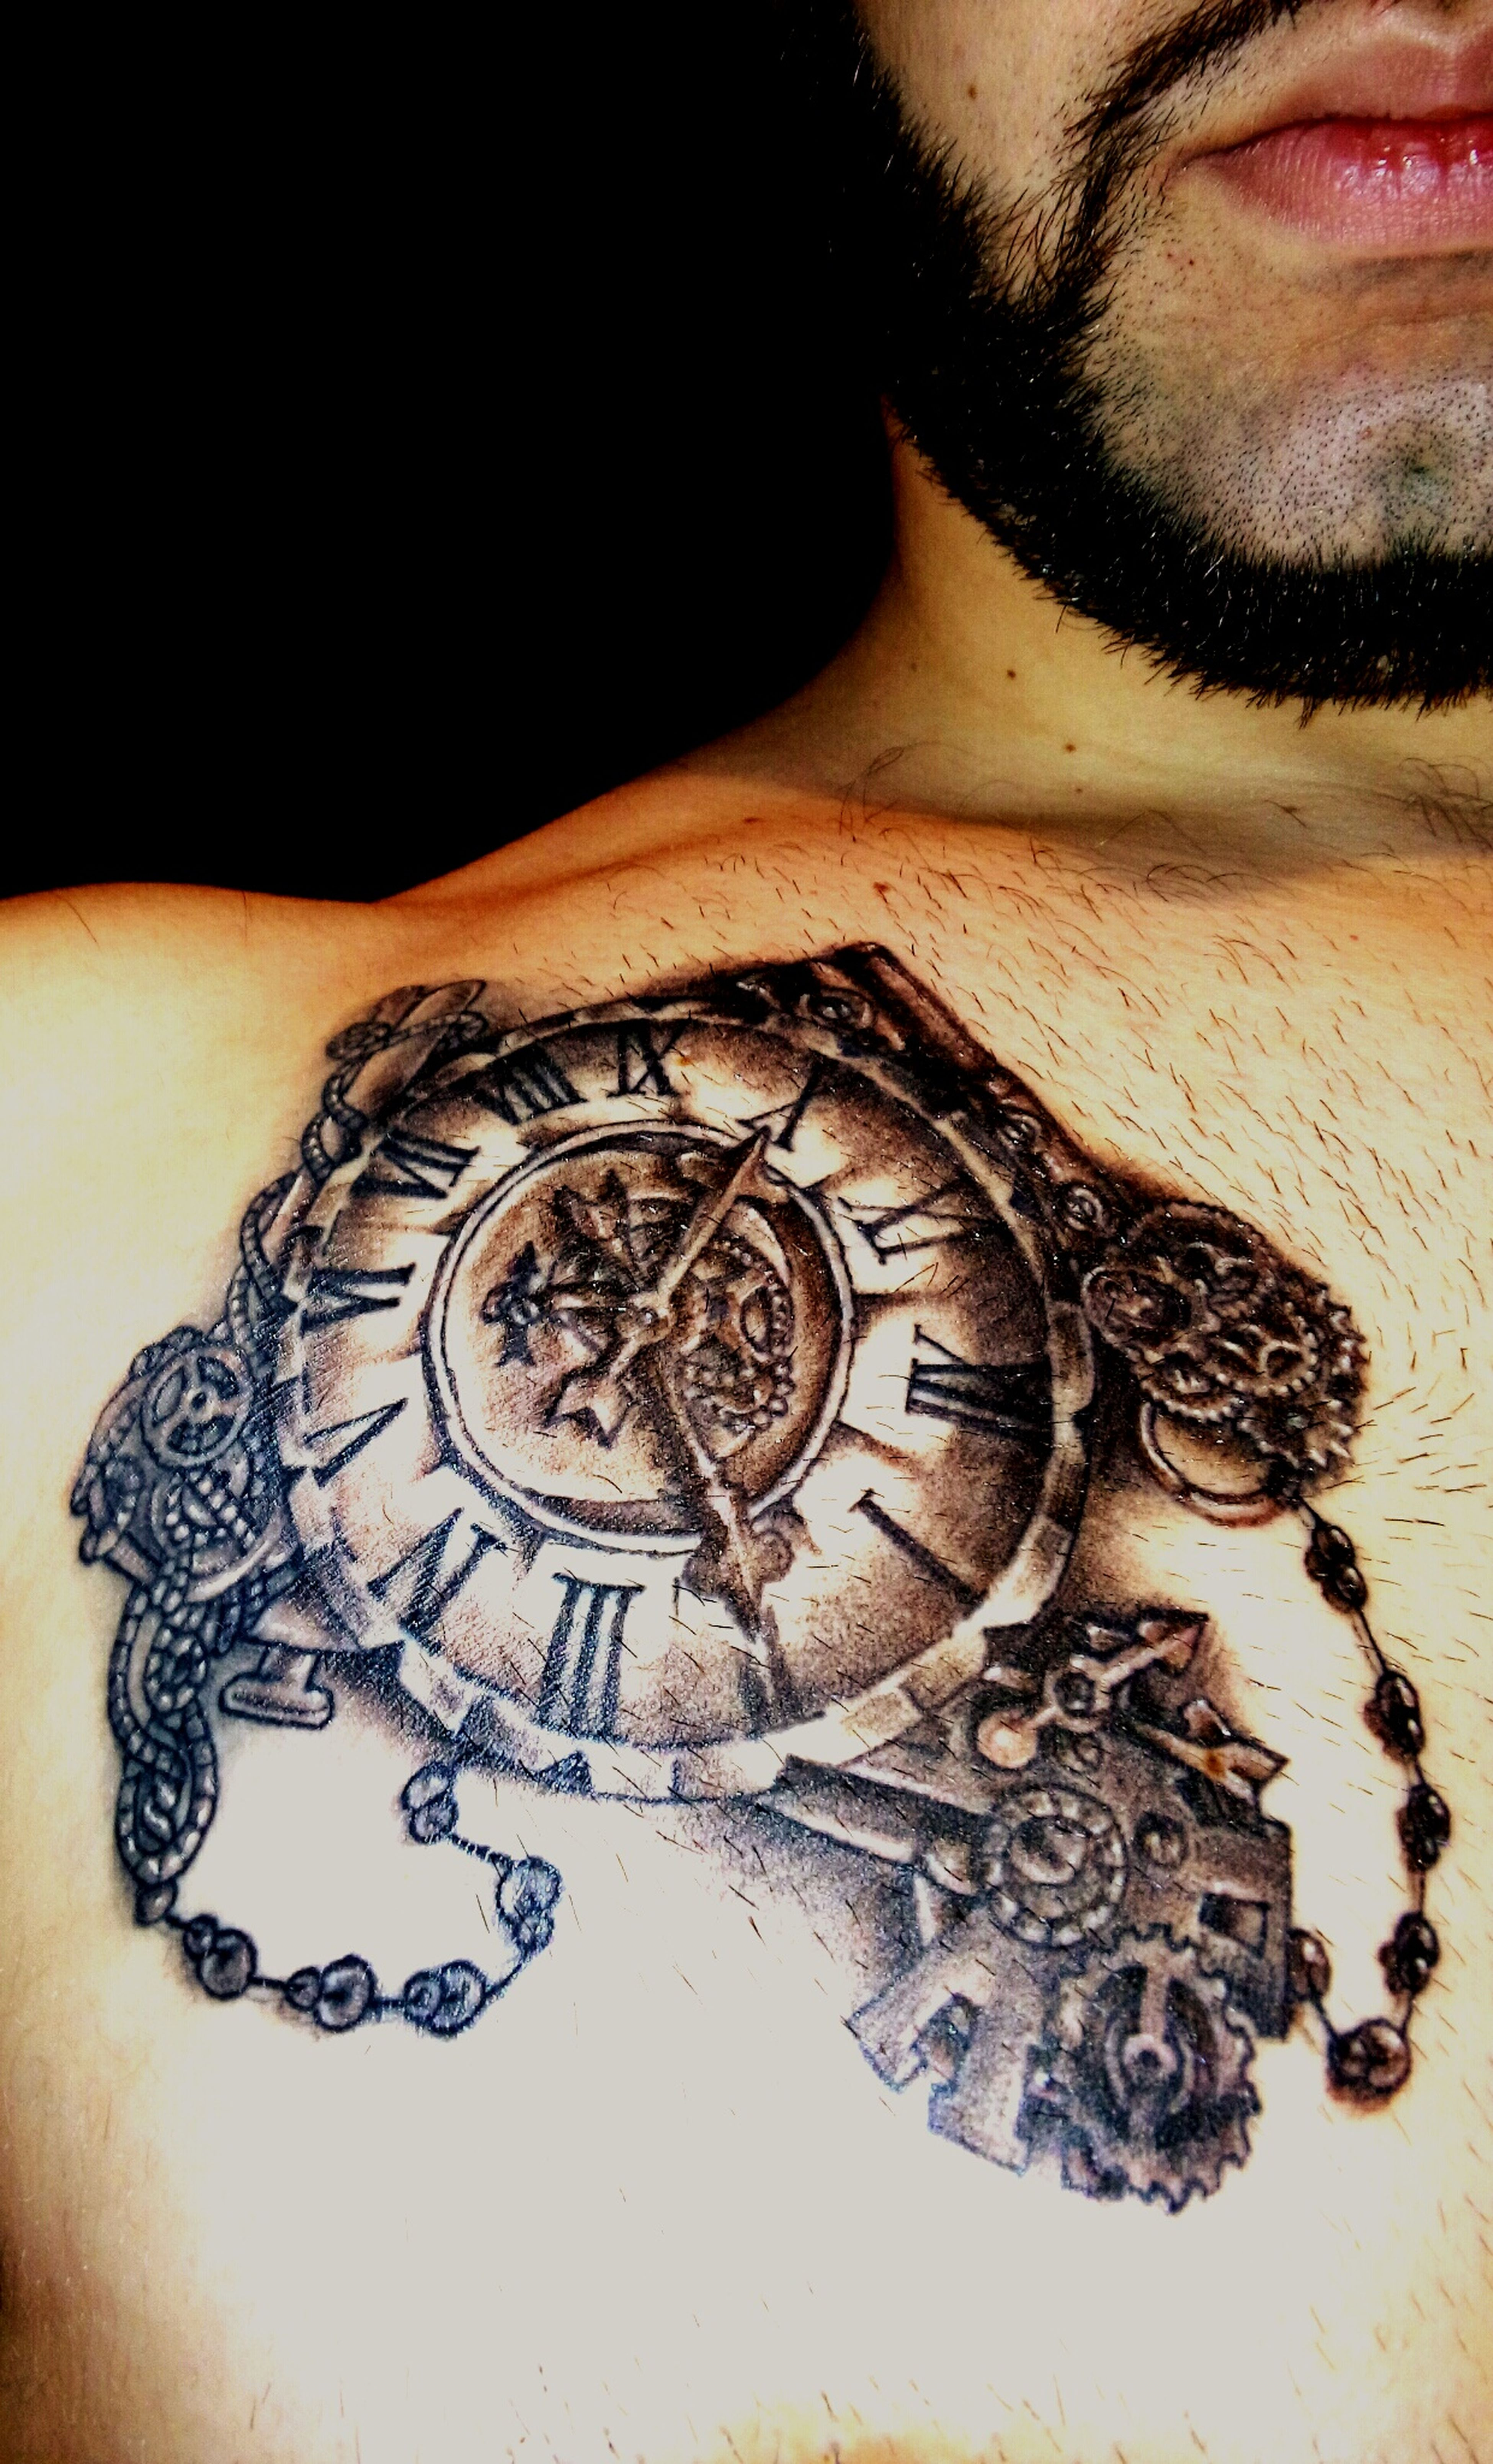 Relaxing Taking Photos Enjoying Life Beardlife That's Me Awesome Newtattoo Tattoo Tattoos Clock Tattoo